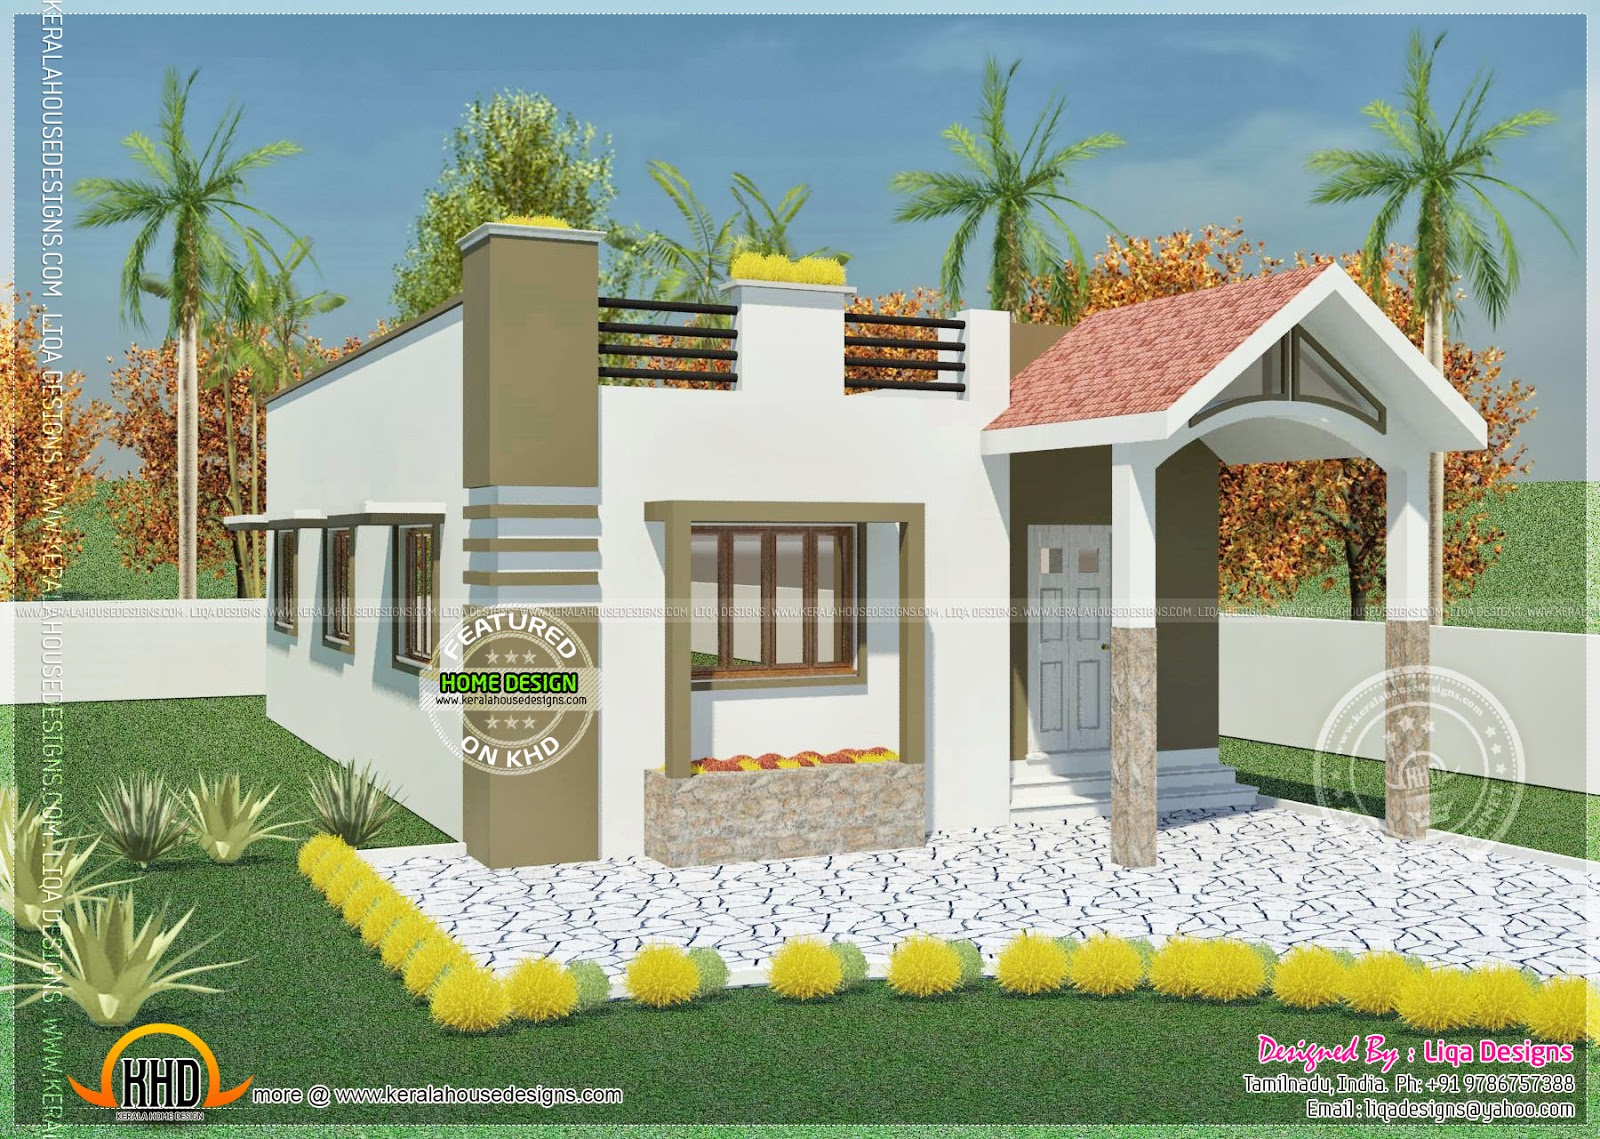 Tamilnadu style homes house design plans for Home designs in tamilnadu